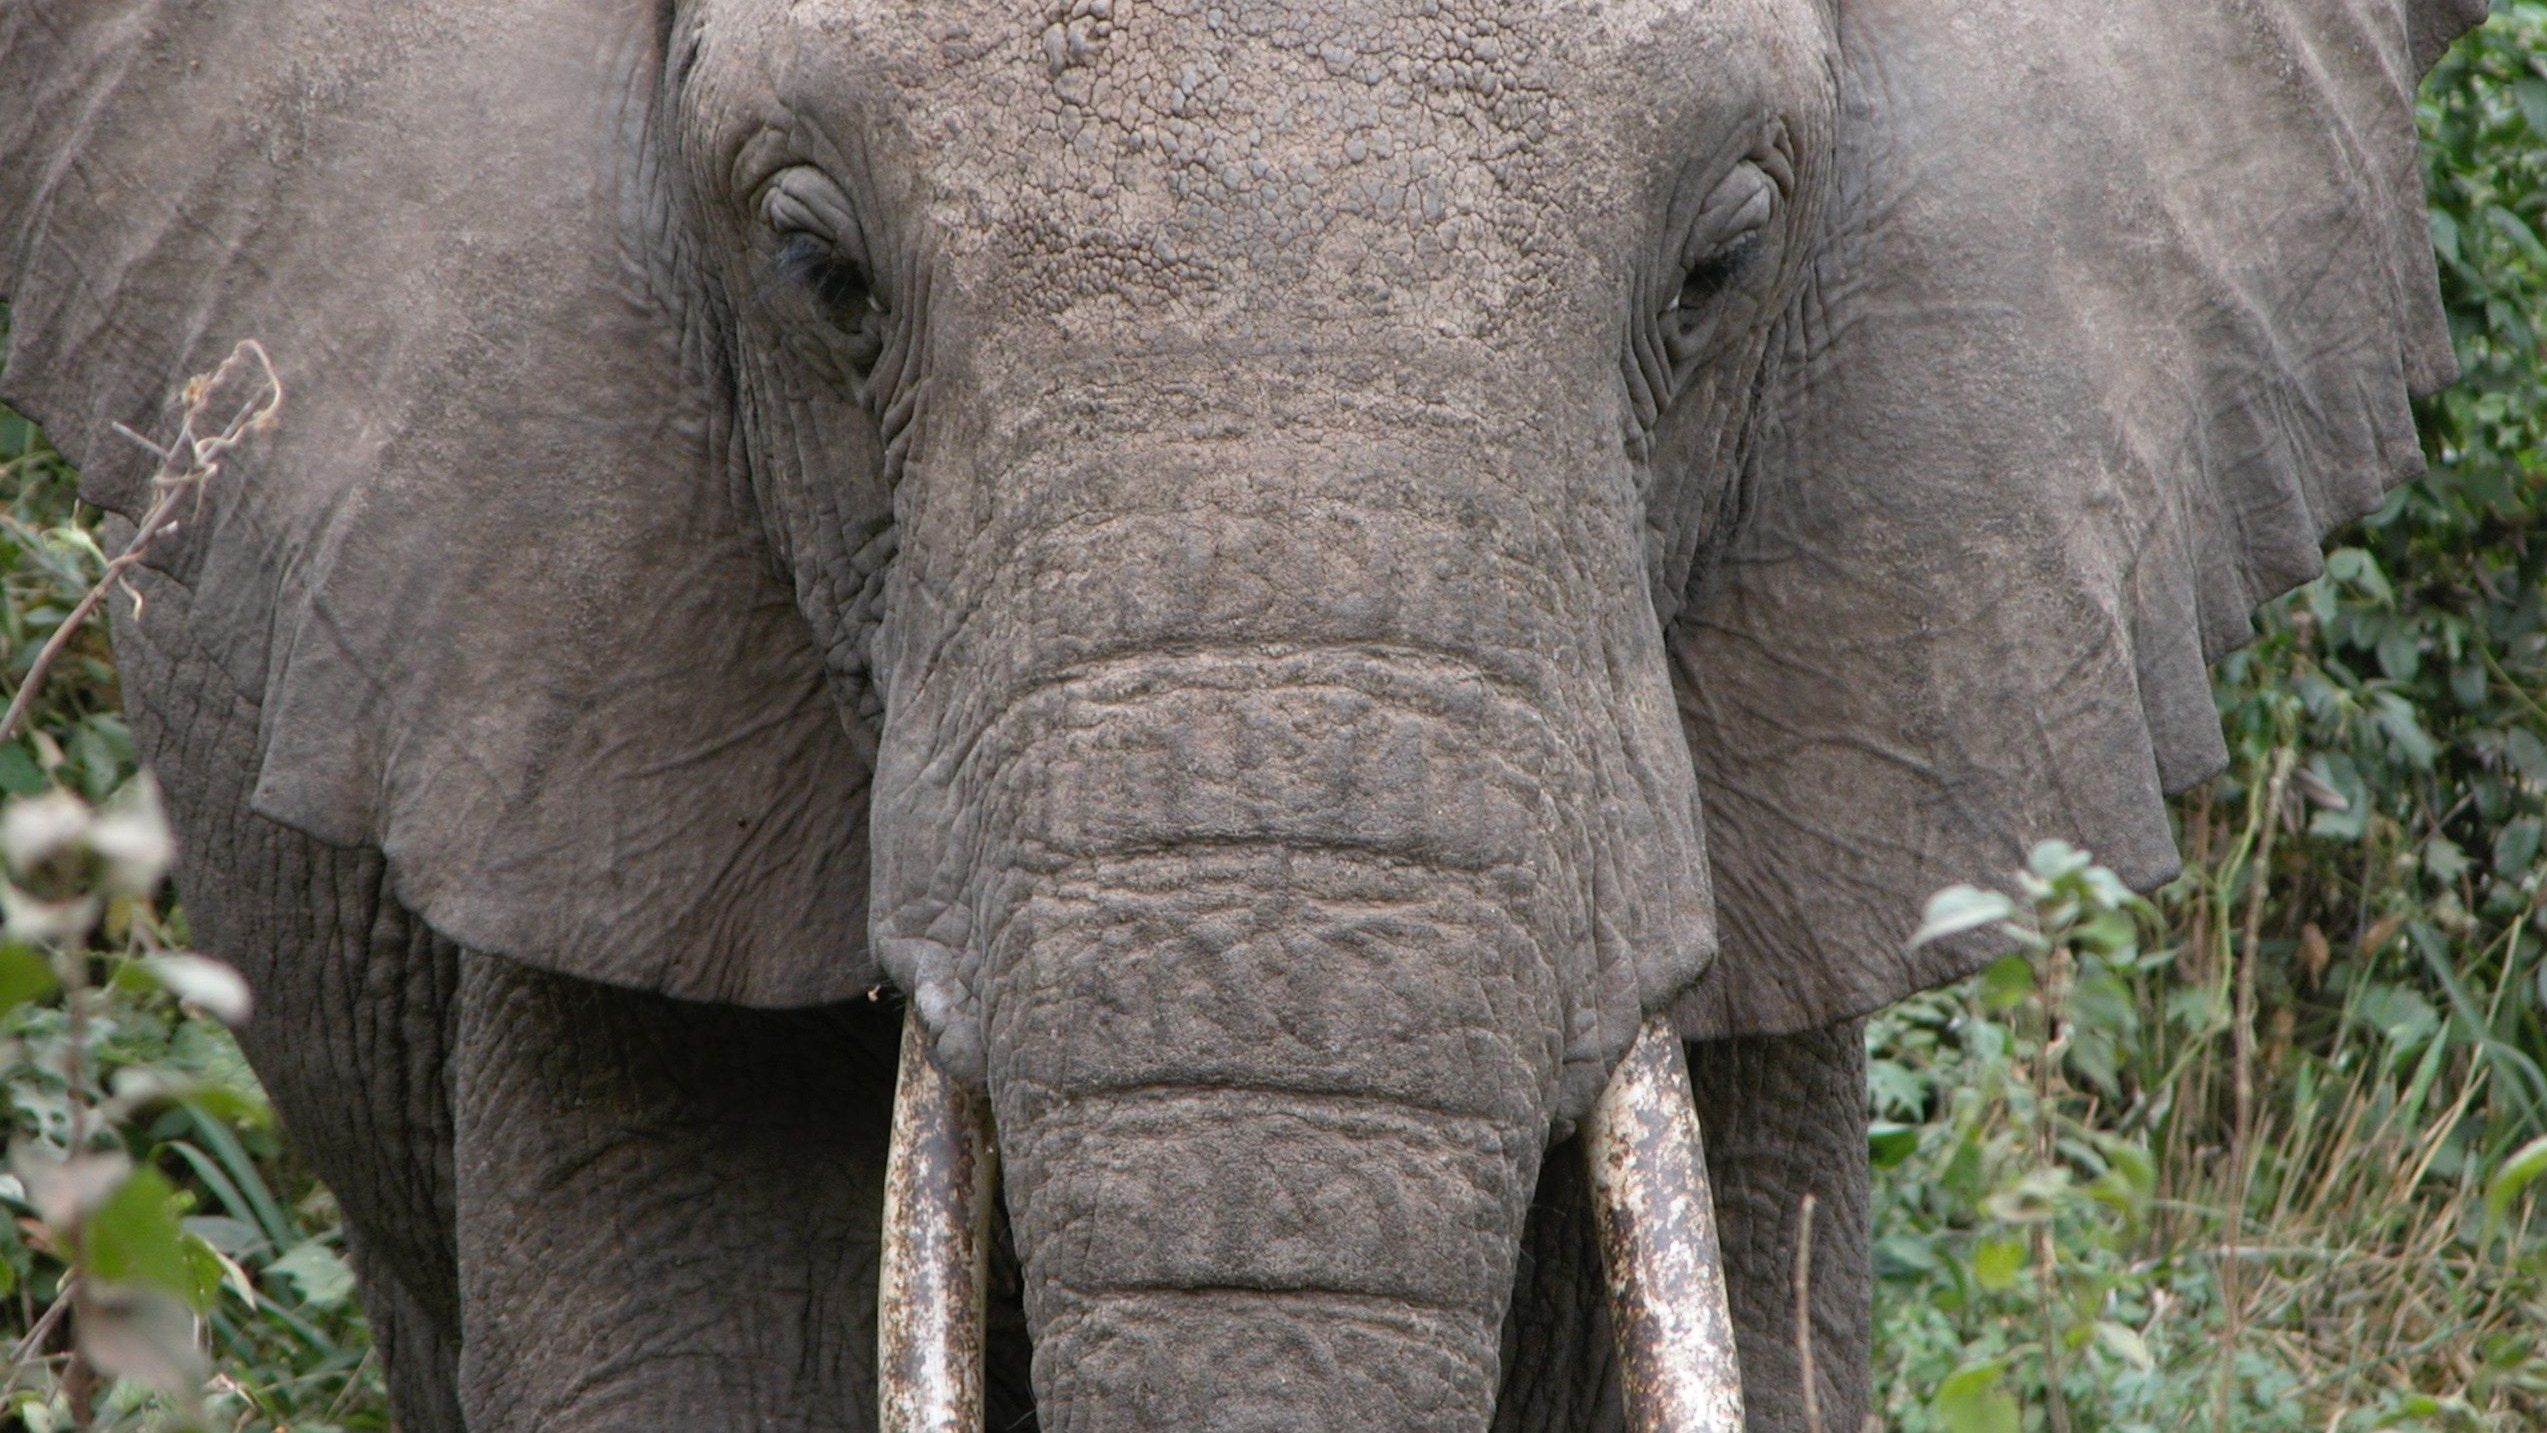 A close-up of an elephant face.